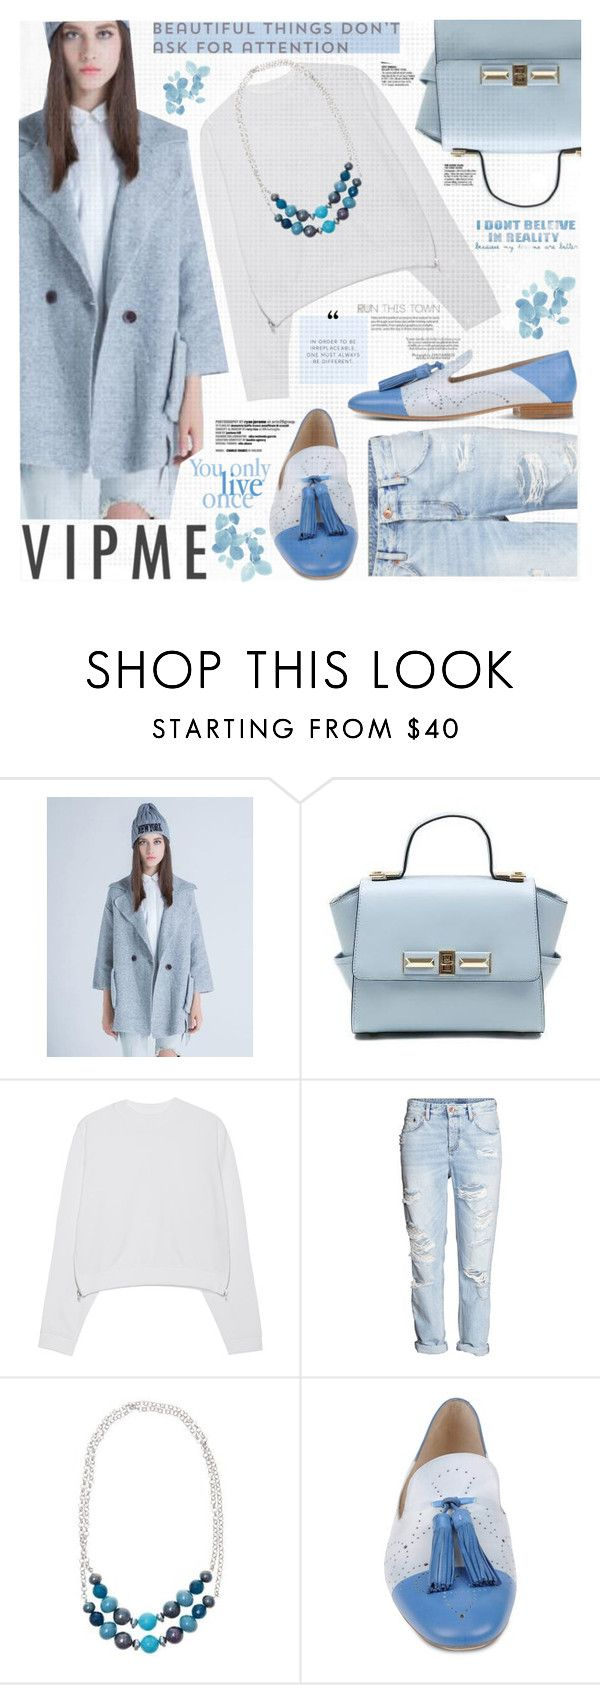 """""""VipMe 2"""" by katjuncica ❤ liked on Polyvore featuring moda, Acne Studios, H&M, Fratelli Rossetti, women's clothing, women, female, woman, misses y juniors"""